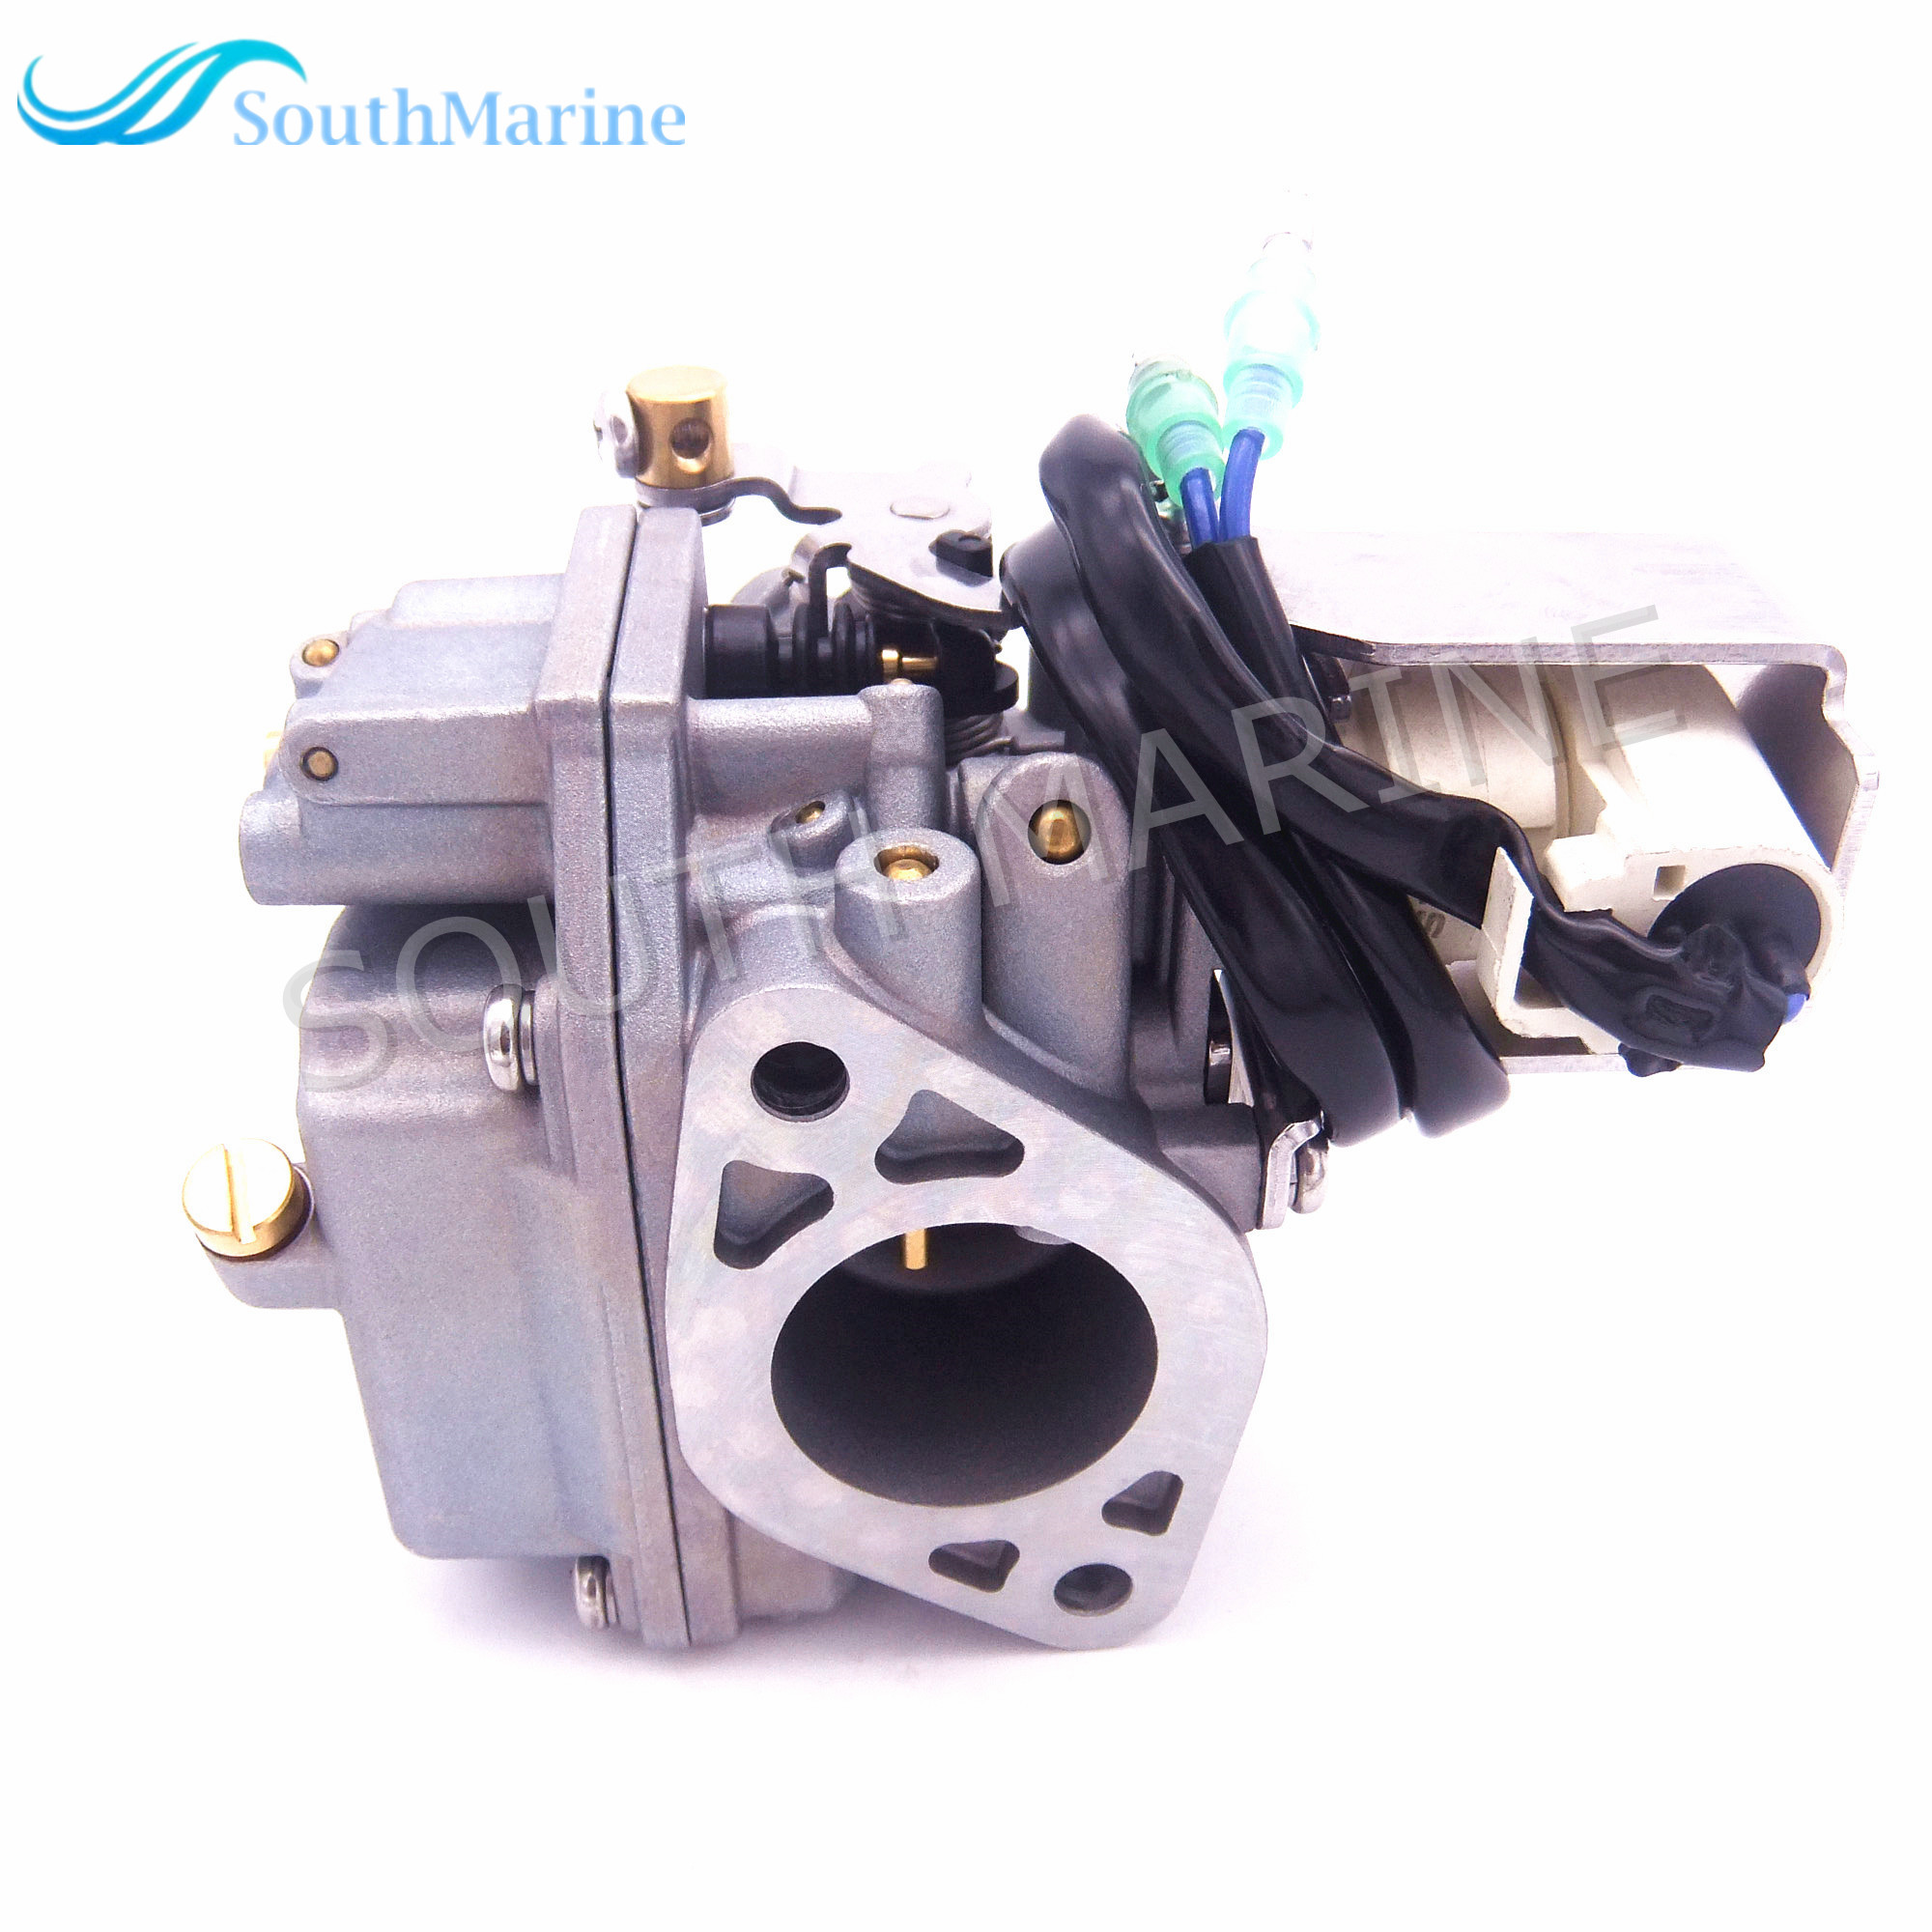 Outboard Engine Carburetor Assy 6AH 14301 00 6AH 14301 01 for Yamaha 4 stroke F20 Boat Motor Free Shipping-in Boat Engine from Automobiles & Motorcycles